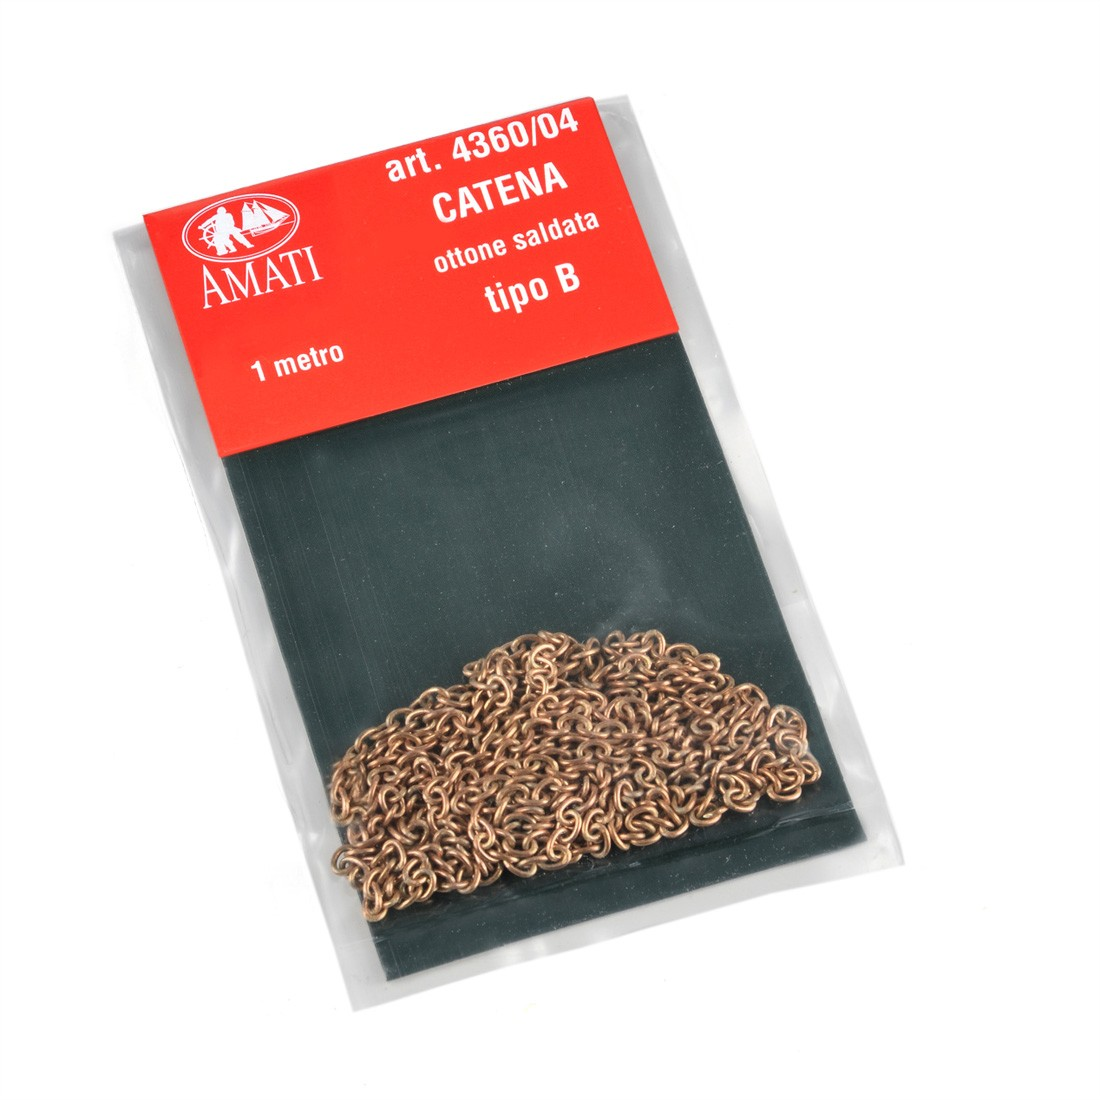 Catena tipo B in ottone mm.1 x 1 mt.